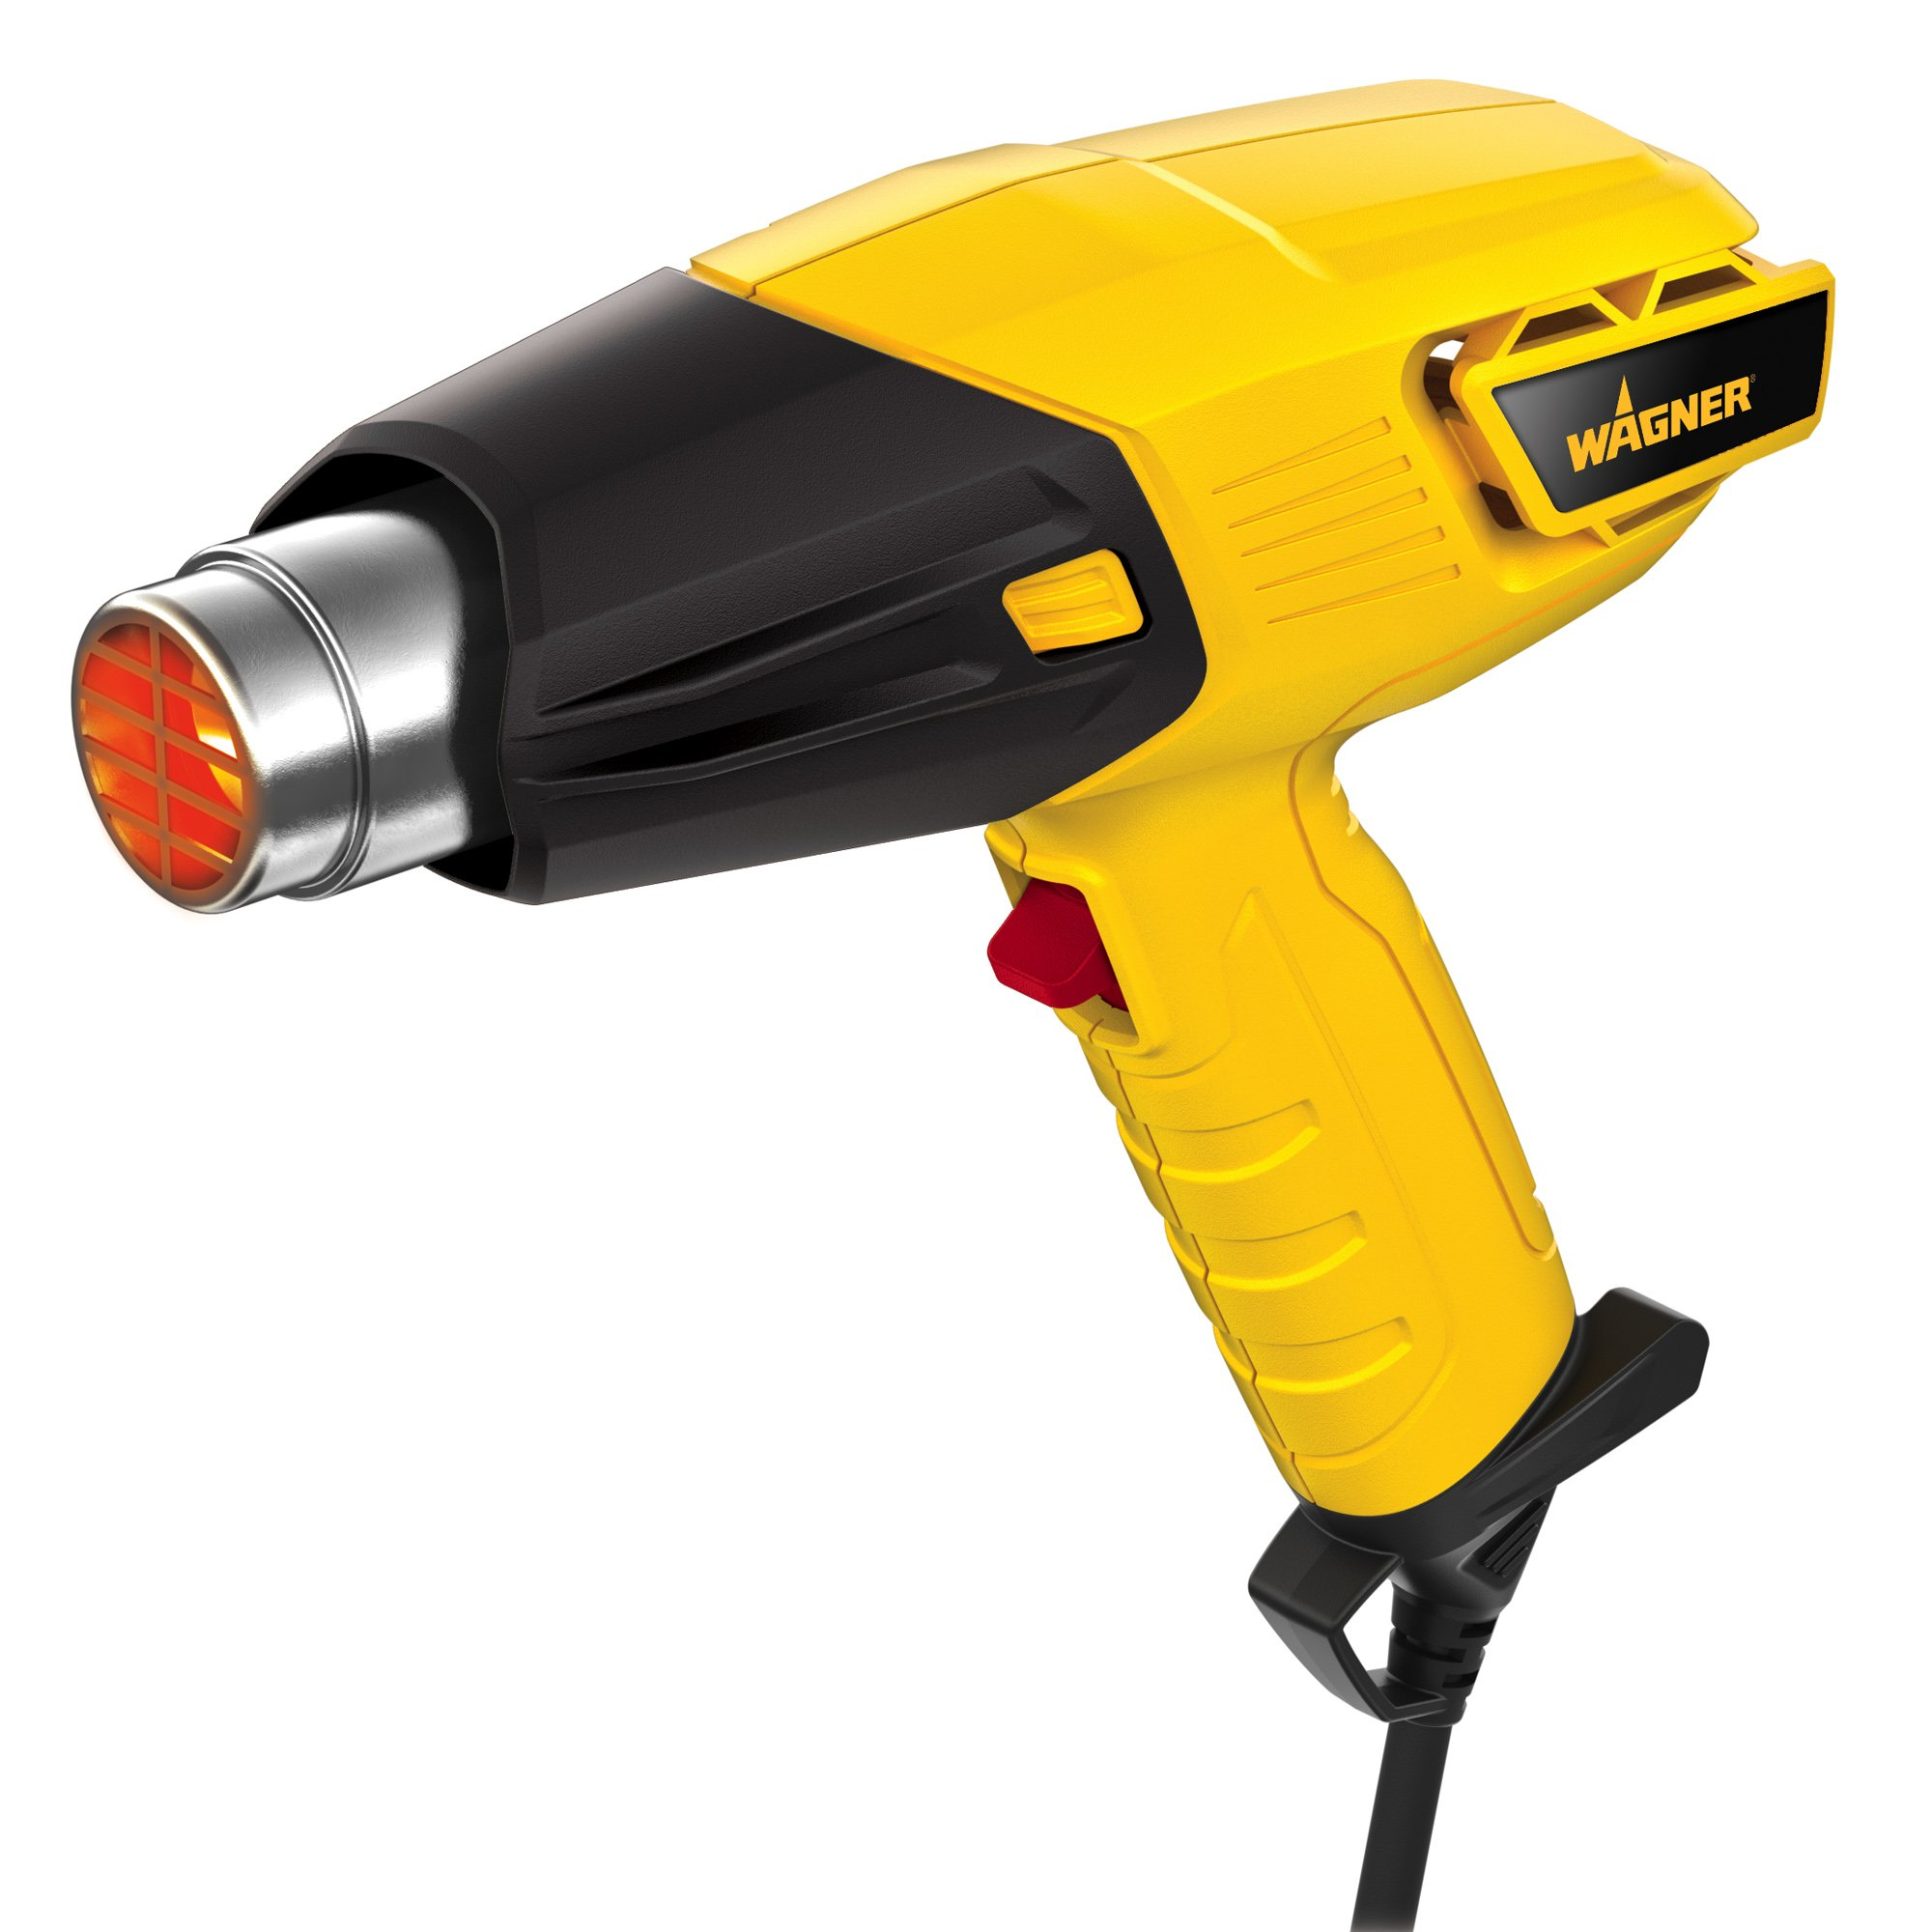 Wagner 0503059 Furno 300 Heat Gun, 750ᵒF & 1000ᵒF Heat Settings by Wagner Spraytech